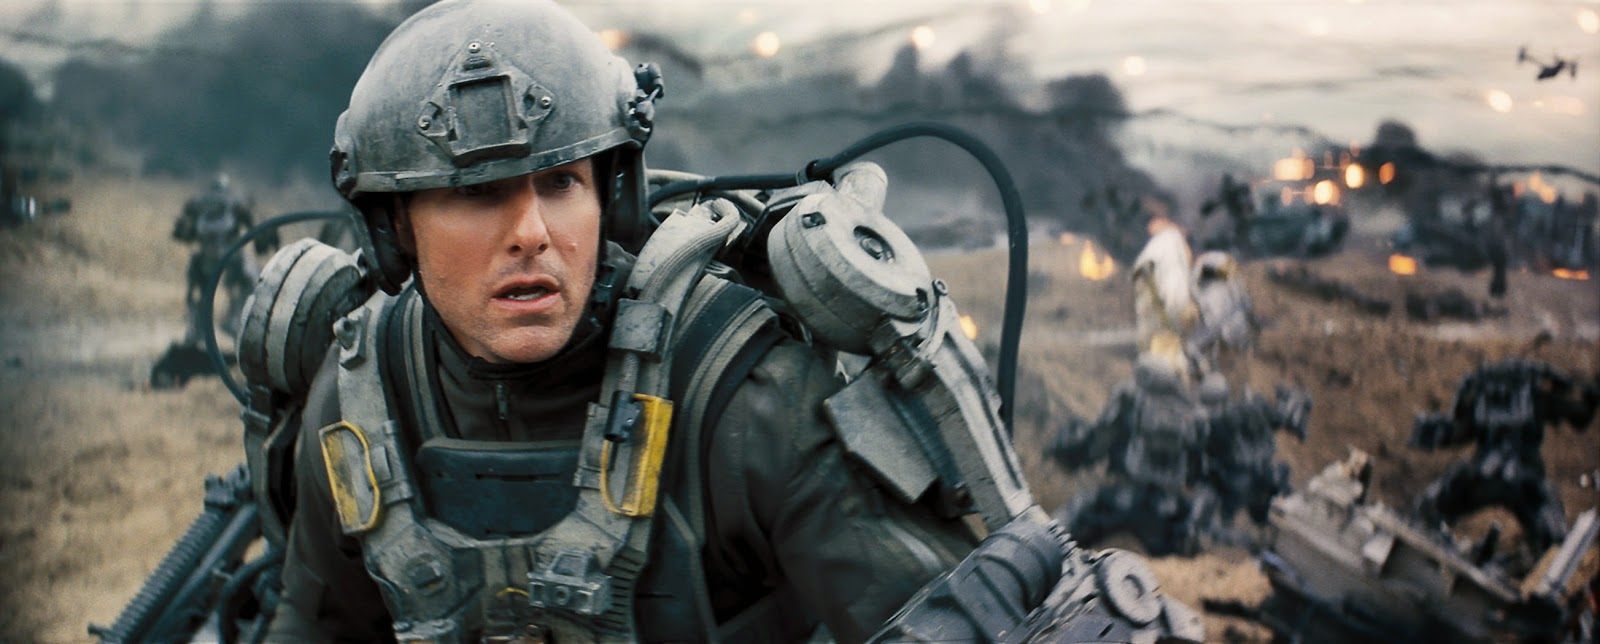 Future War Stories: FWS Index: Live-Action Military Sci-Fi